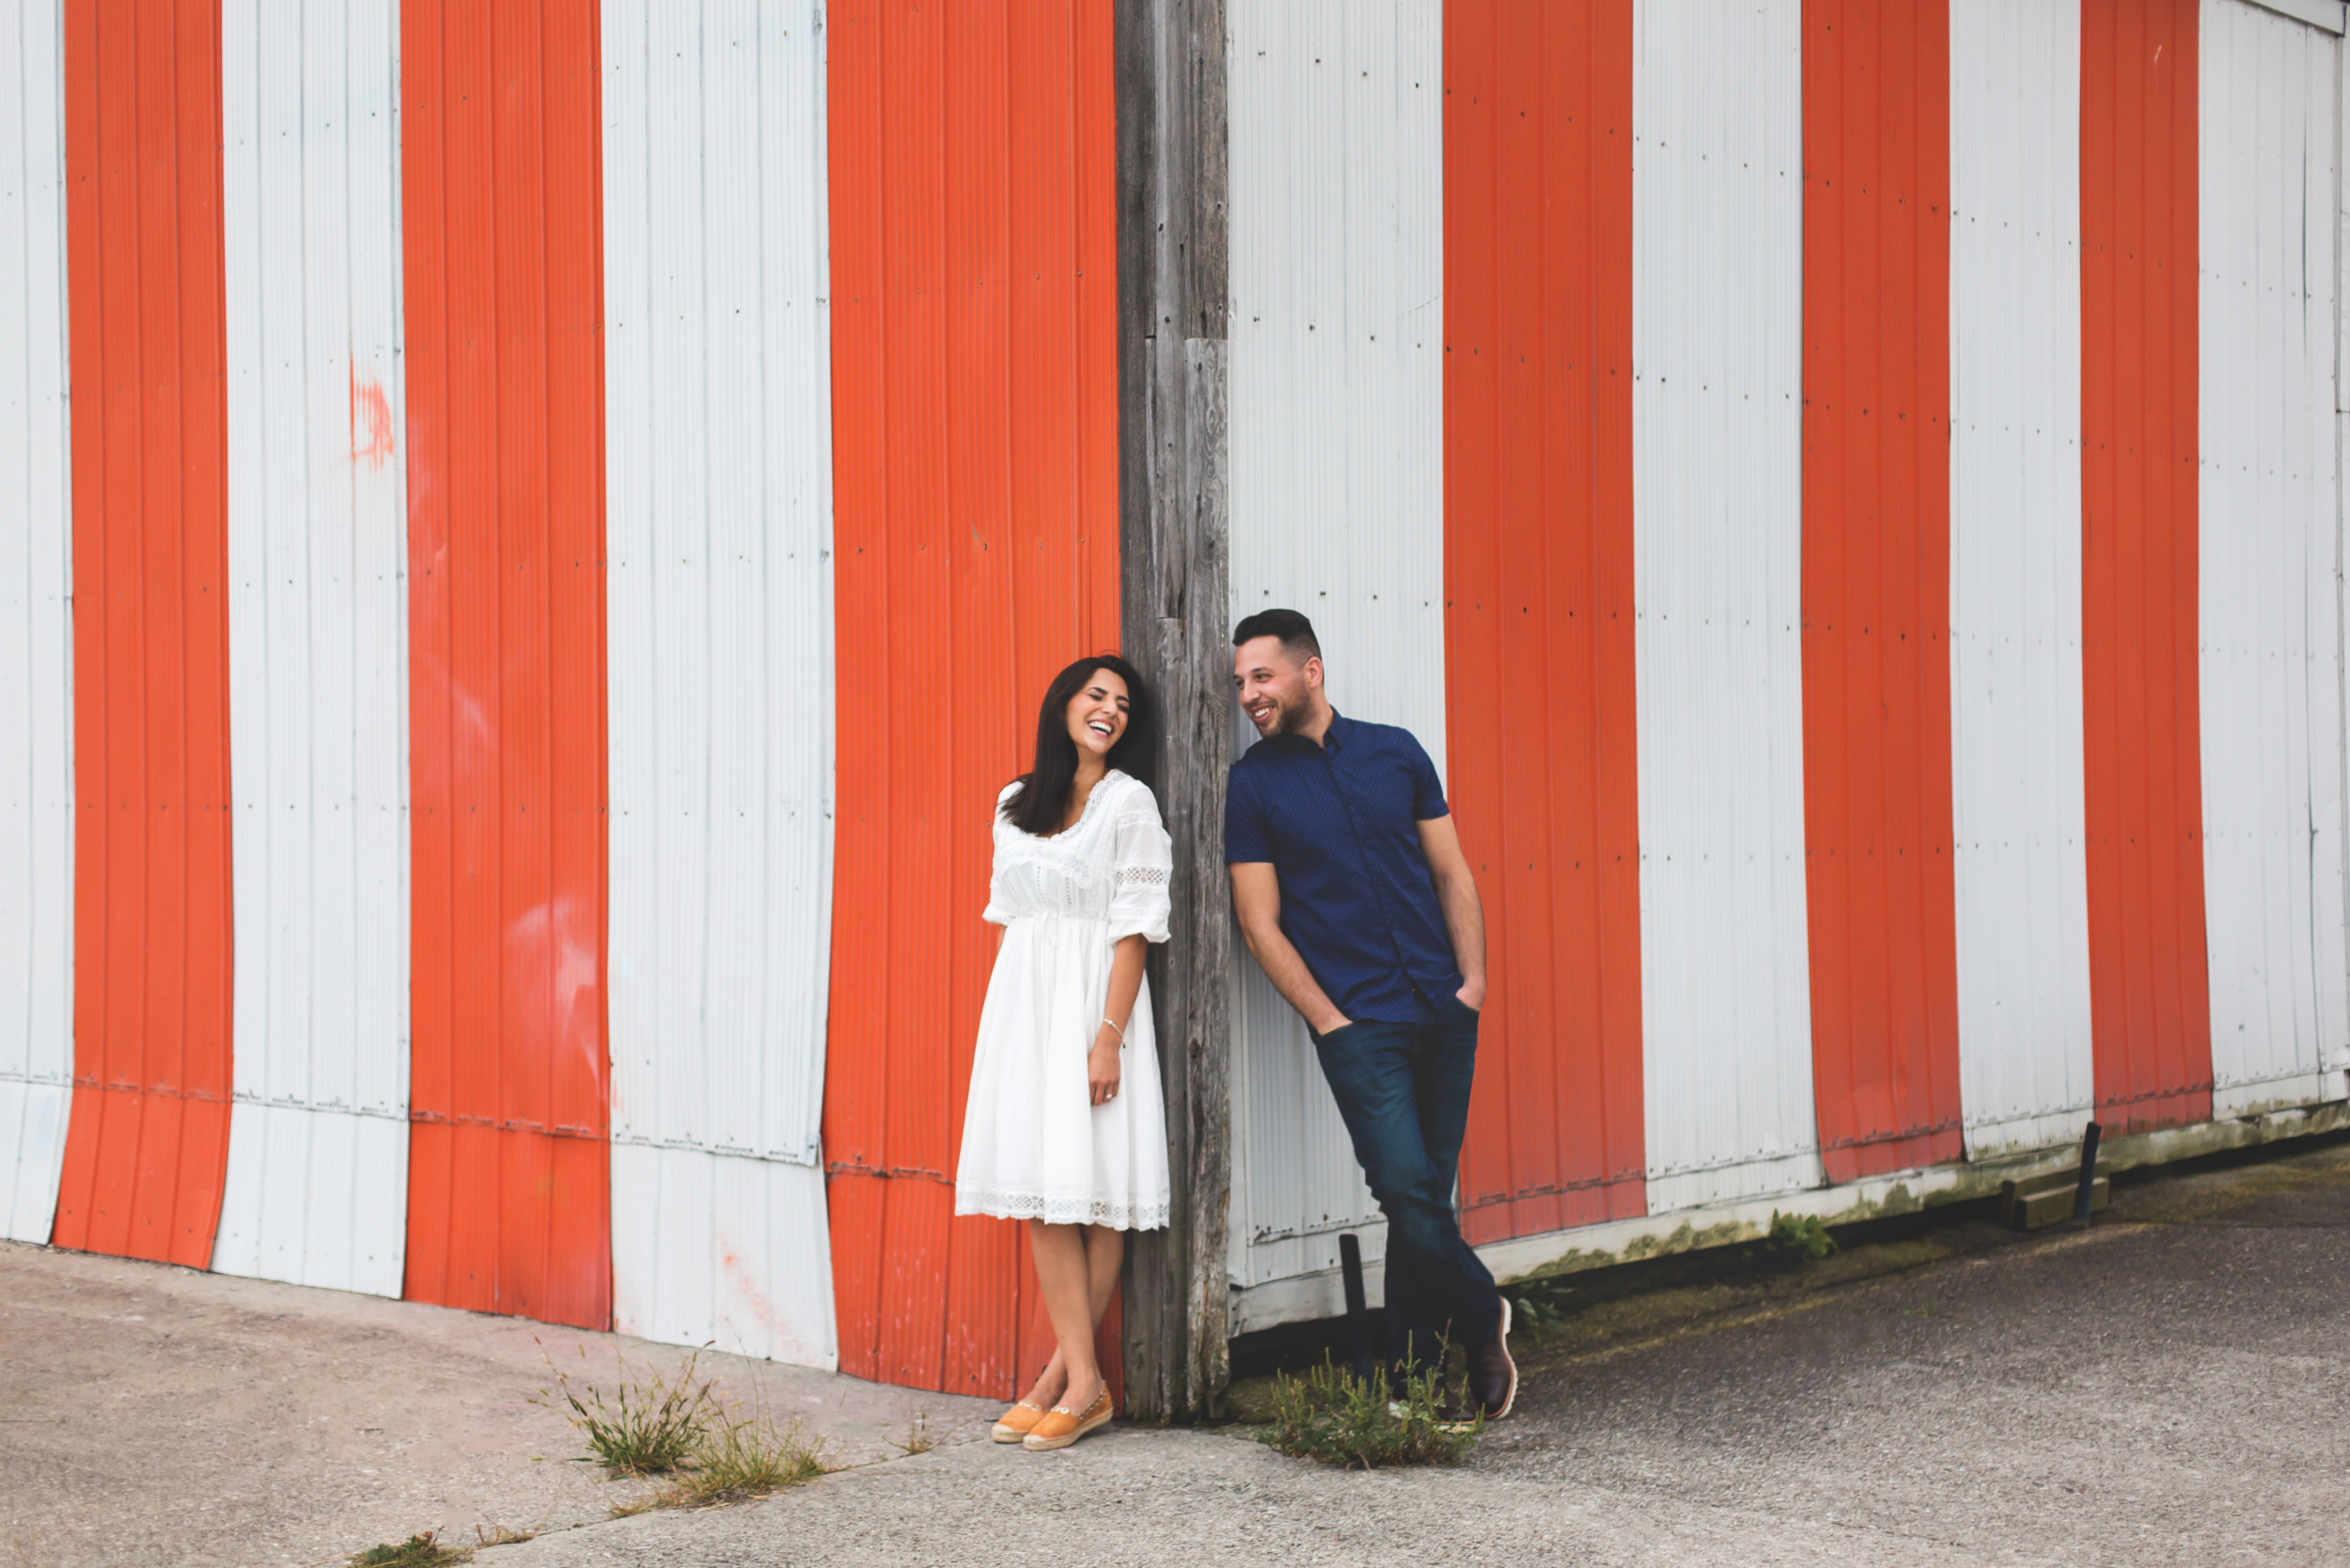 Engagement-Session-Hamilton-Burlington-Oakville-Toronto-Niagara-Wedding-Photographer-Engaged-Photography-Brantford-Airport-HamOnt-Engaged-Moments-by-Lauren-Photo-Image-22.png